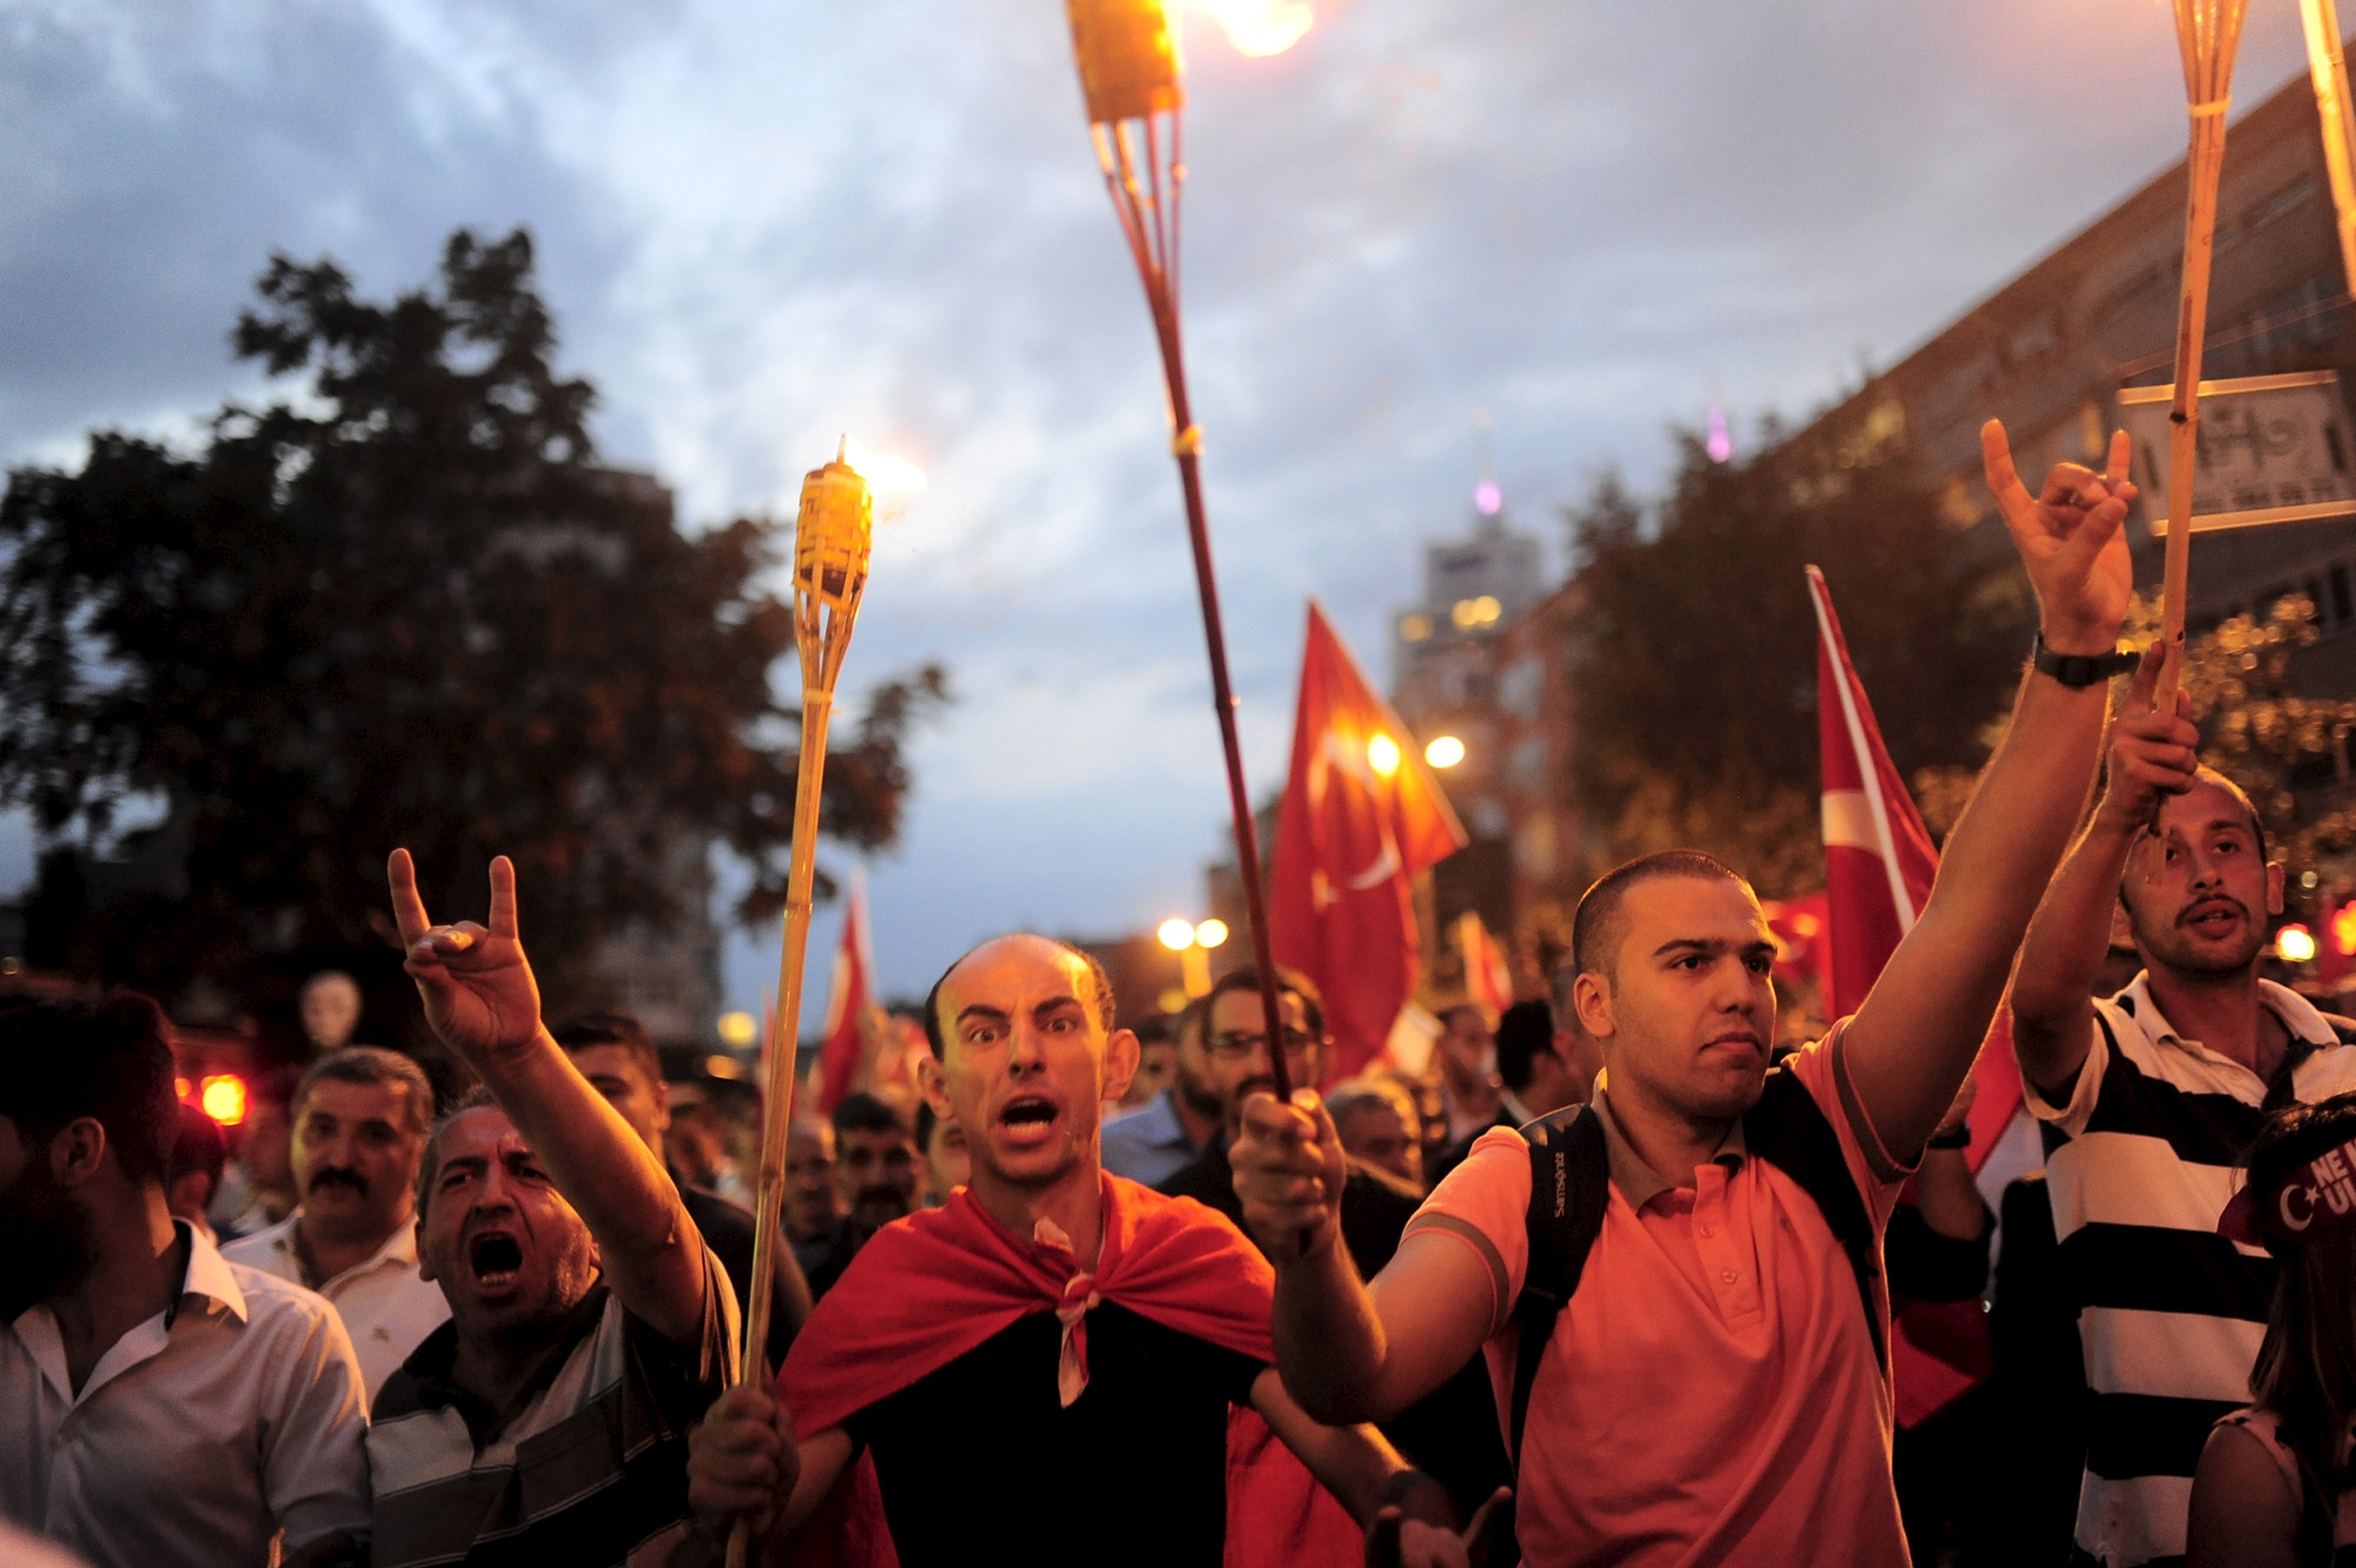 Supporters of ultra-nationalist groups shout slogans during a protest against recent Kurdish militant attacks on Turkish security forces, in Istanbul, Turkey, September 8, 2015.